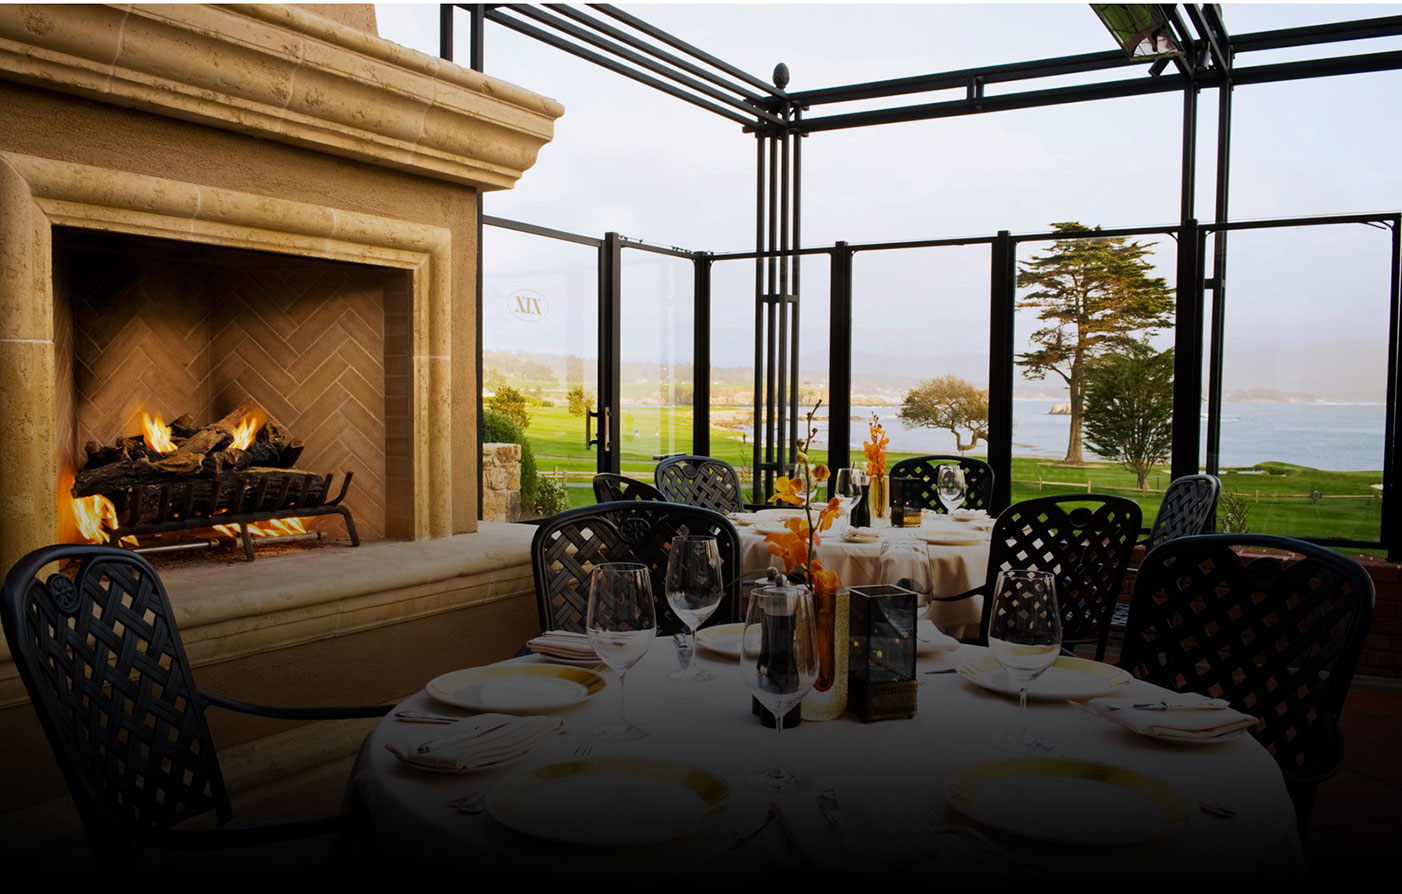 Amazing Dining: The Lodge At Pebble Beach In Pebble Beach